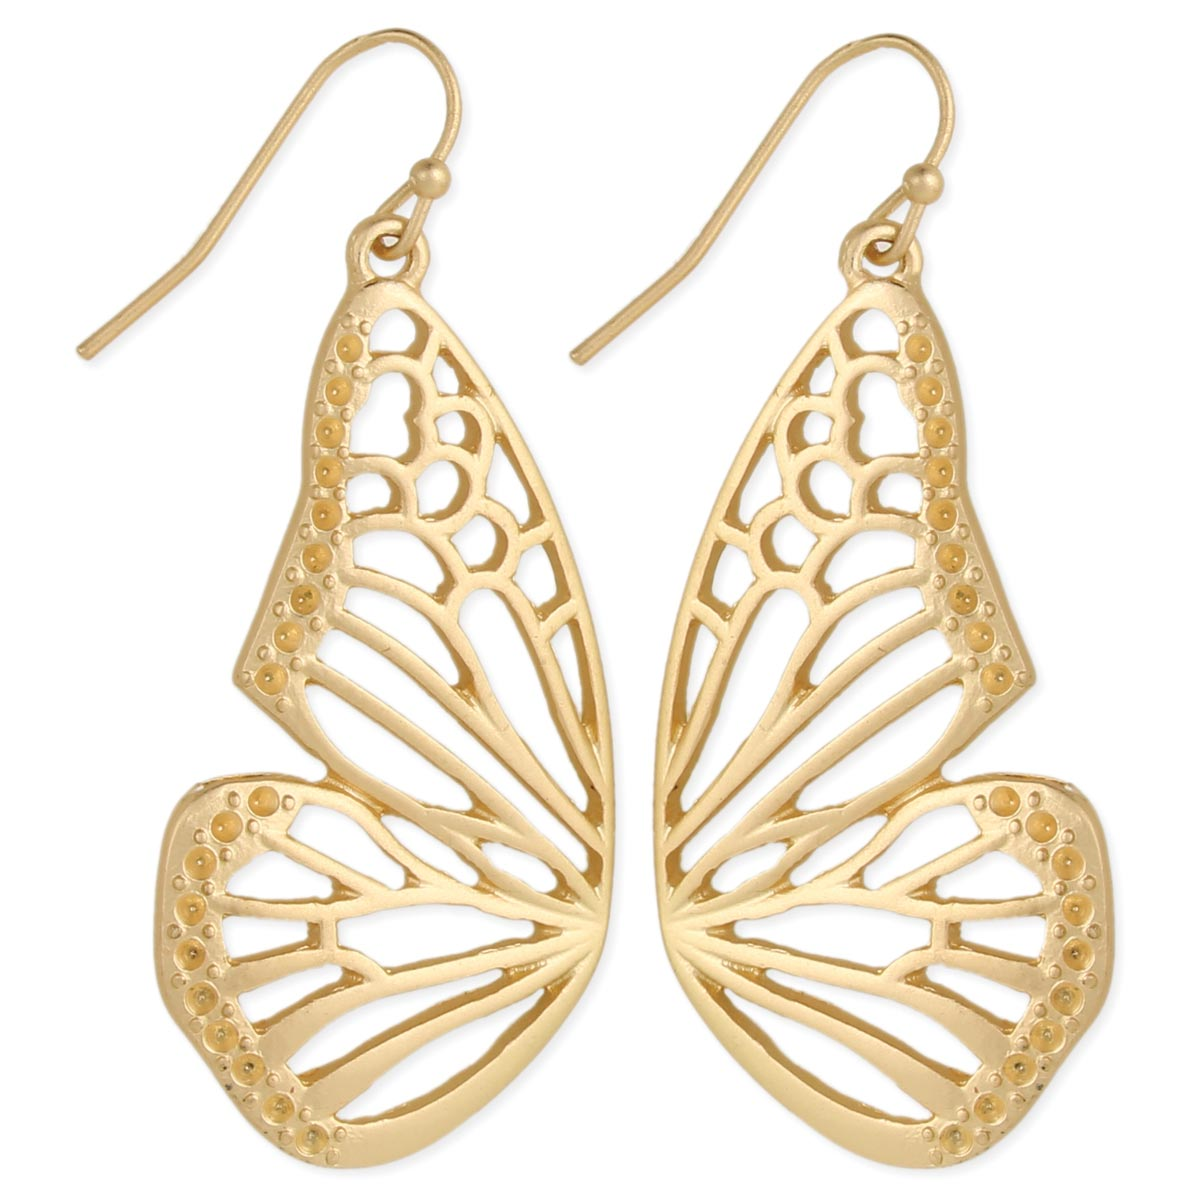 Gold Erfly Wings Earrings View Detailed Images 2